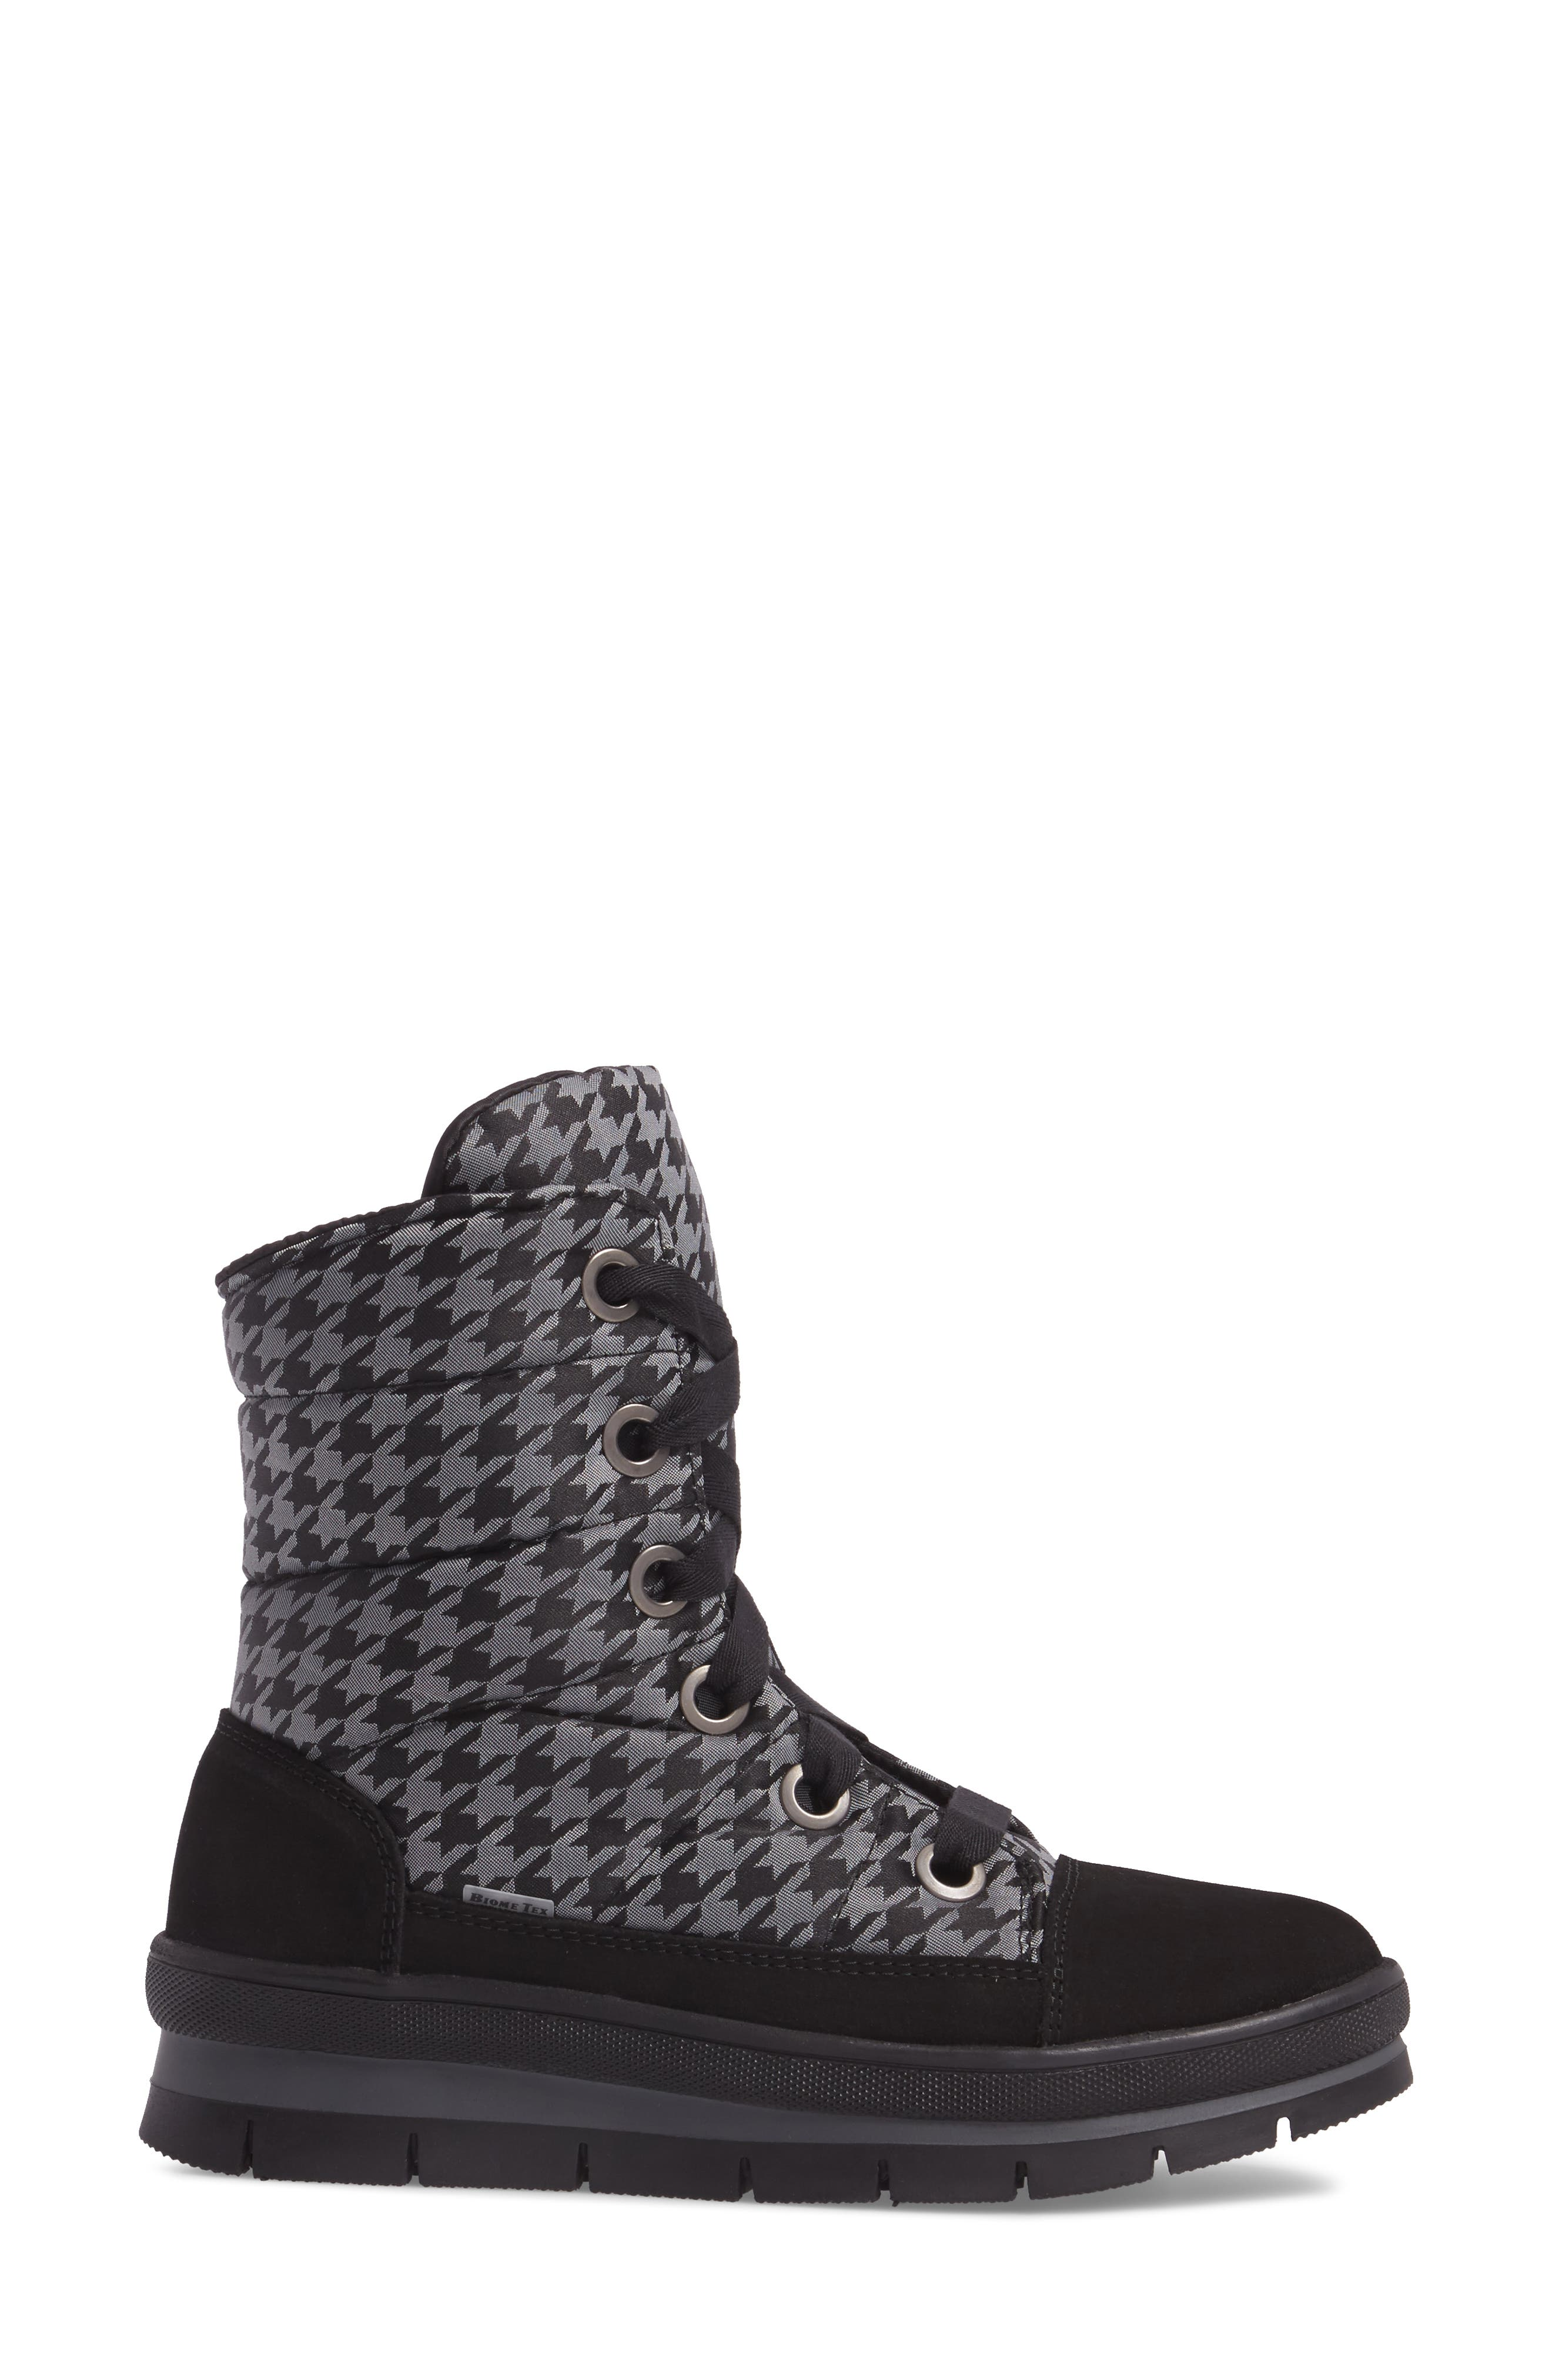 Meribel Waterproof Channel Quilted Lace Up Sneaker Boot,                             Alternate thumbnail 3, color,                             Black Pull Pied